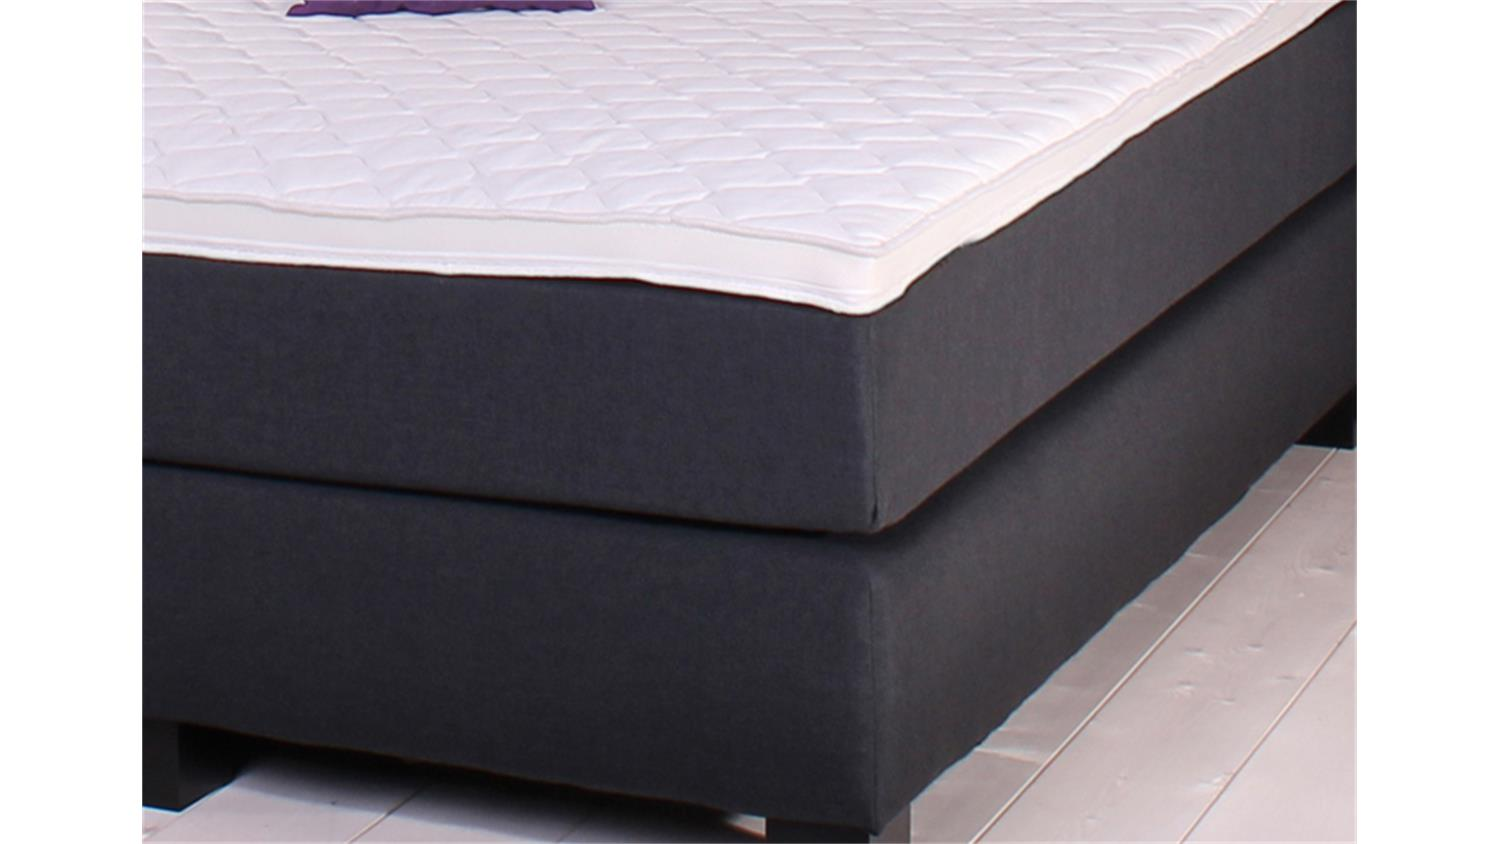 Visco Topper 180x200 Fr Topper 180x200 Awesome Box Spring Bed X Cm Ft Upholstered Bed